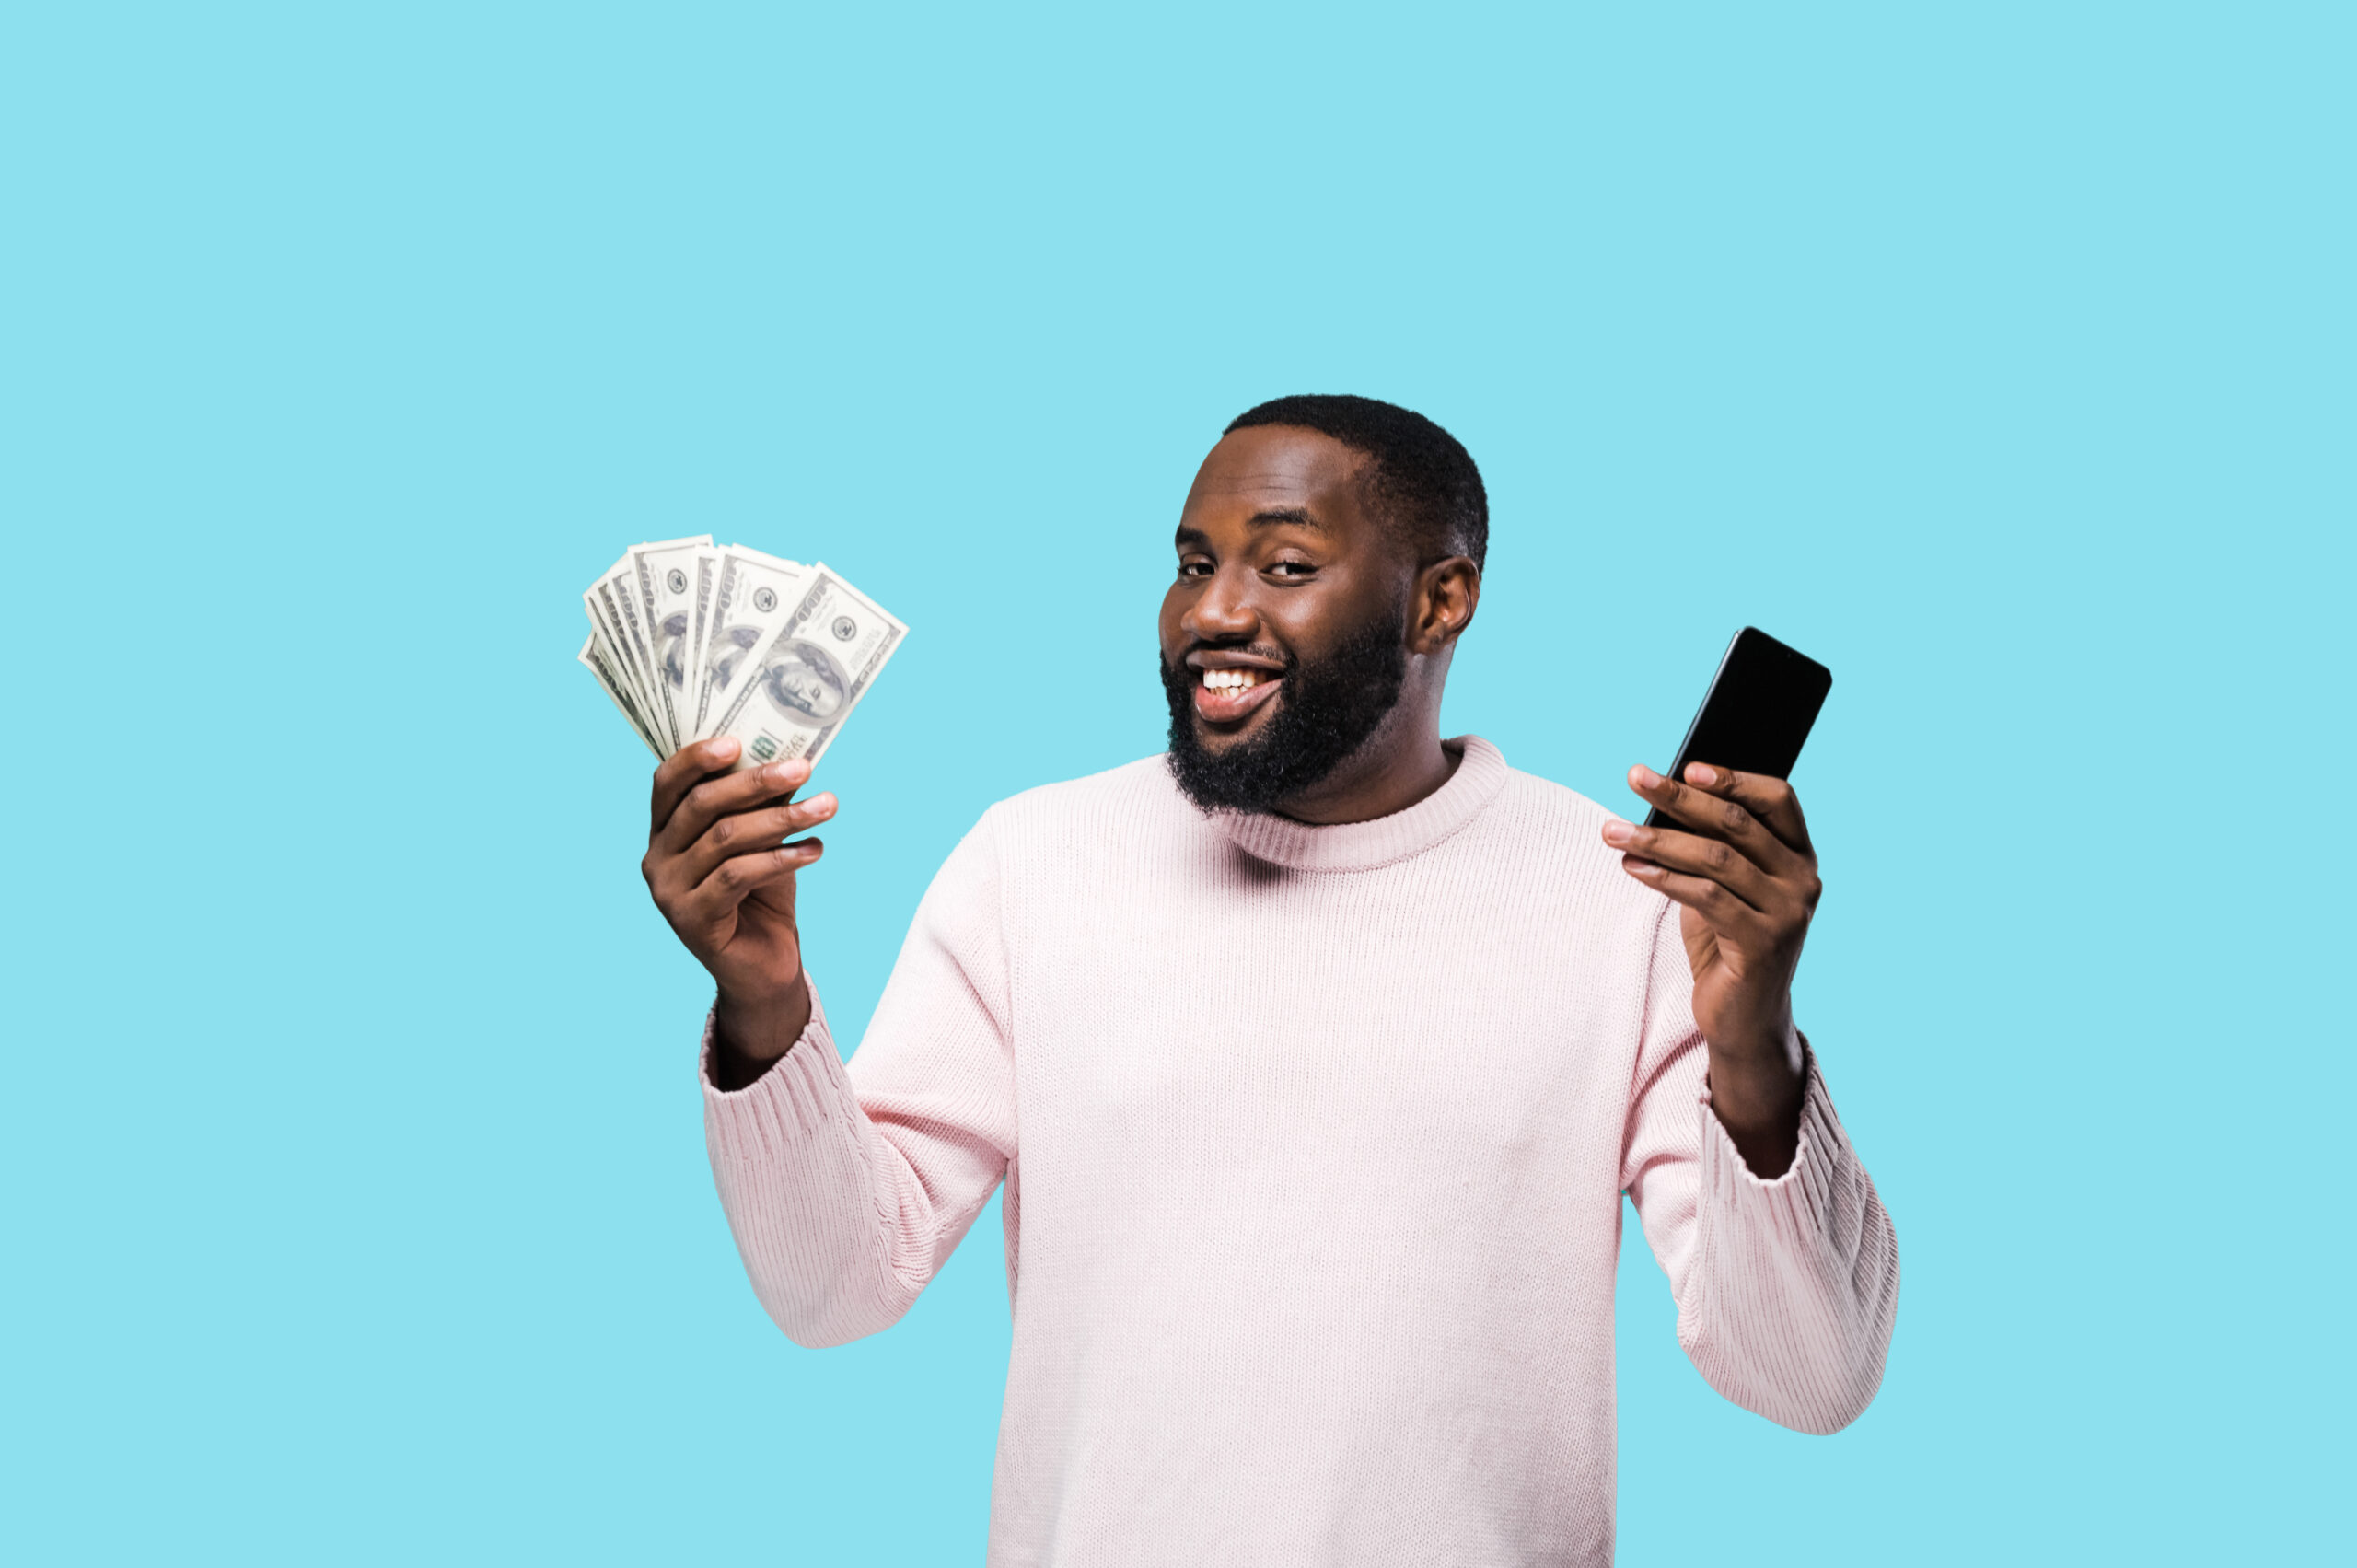 Smiling attractive african american man holds a bunch of money in his hand and mobile phone while standing on isolated blue background and looking at the camera